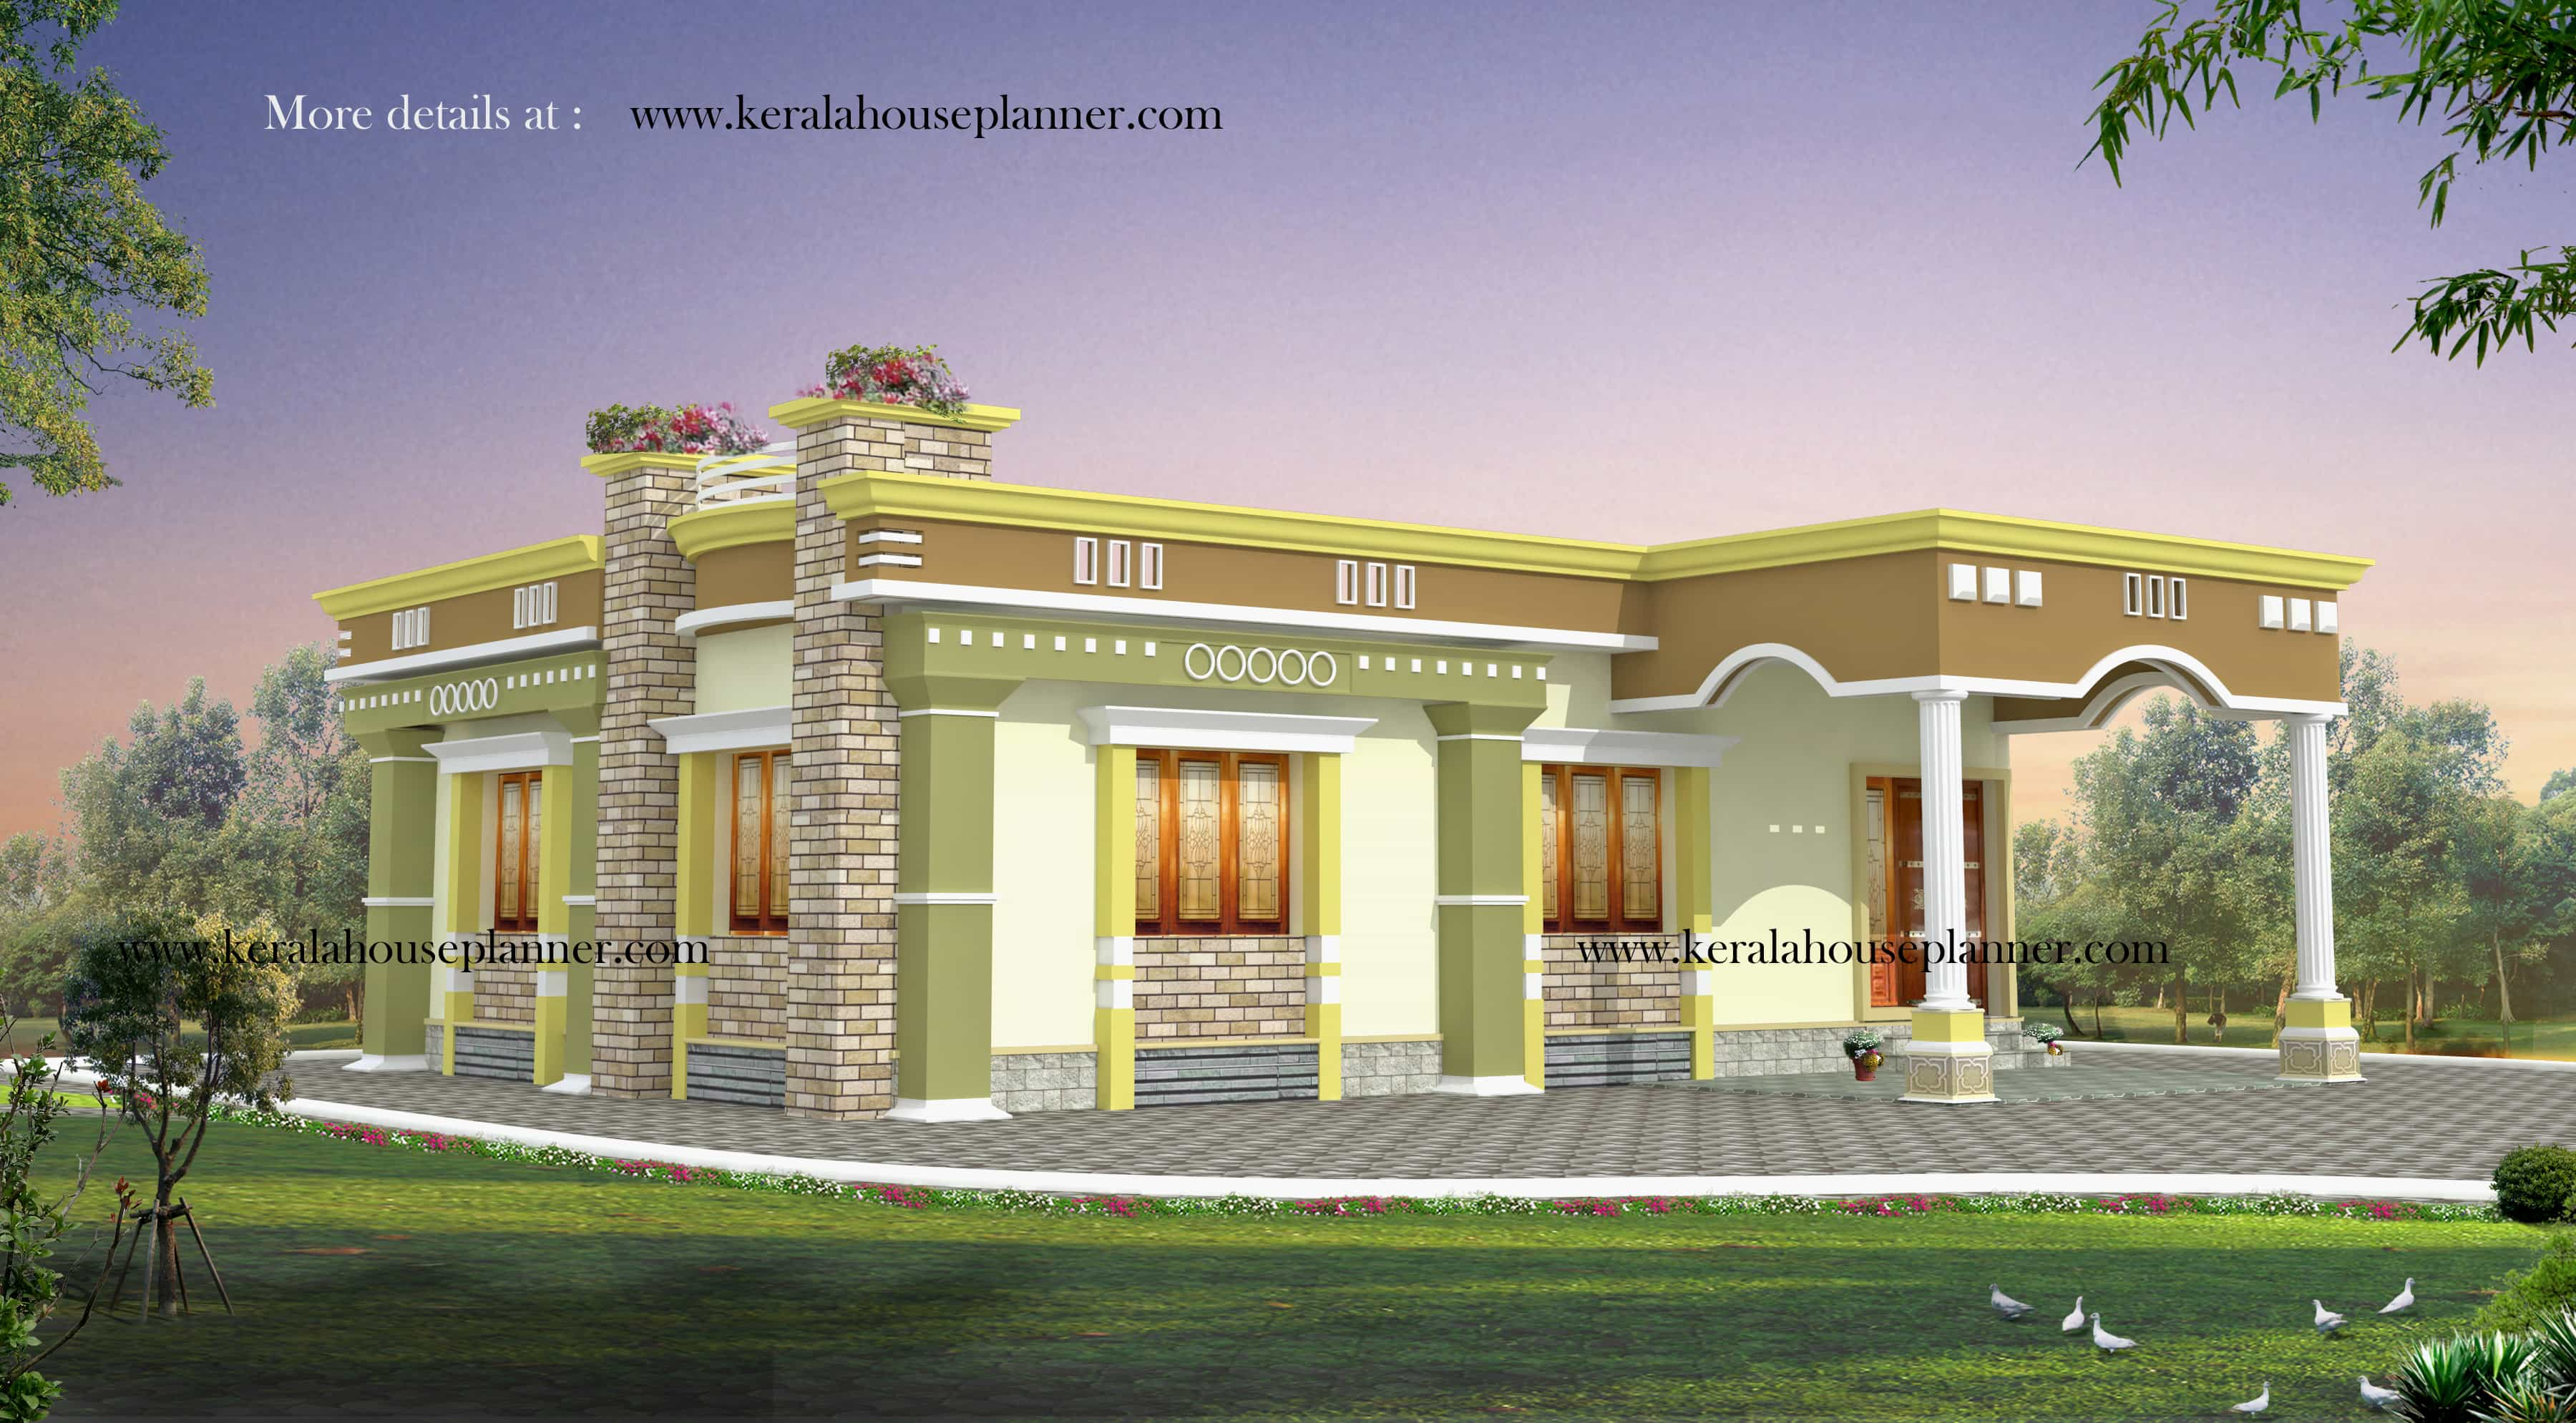 Kerala house plans 1200 sq ft with photos khp for Kerala style single storey house plans